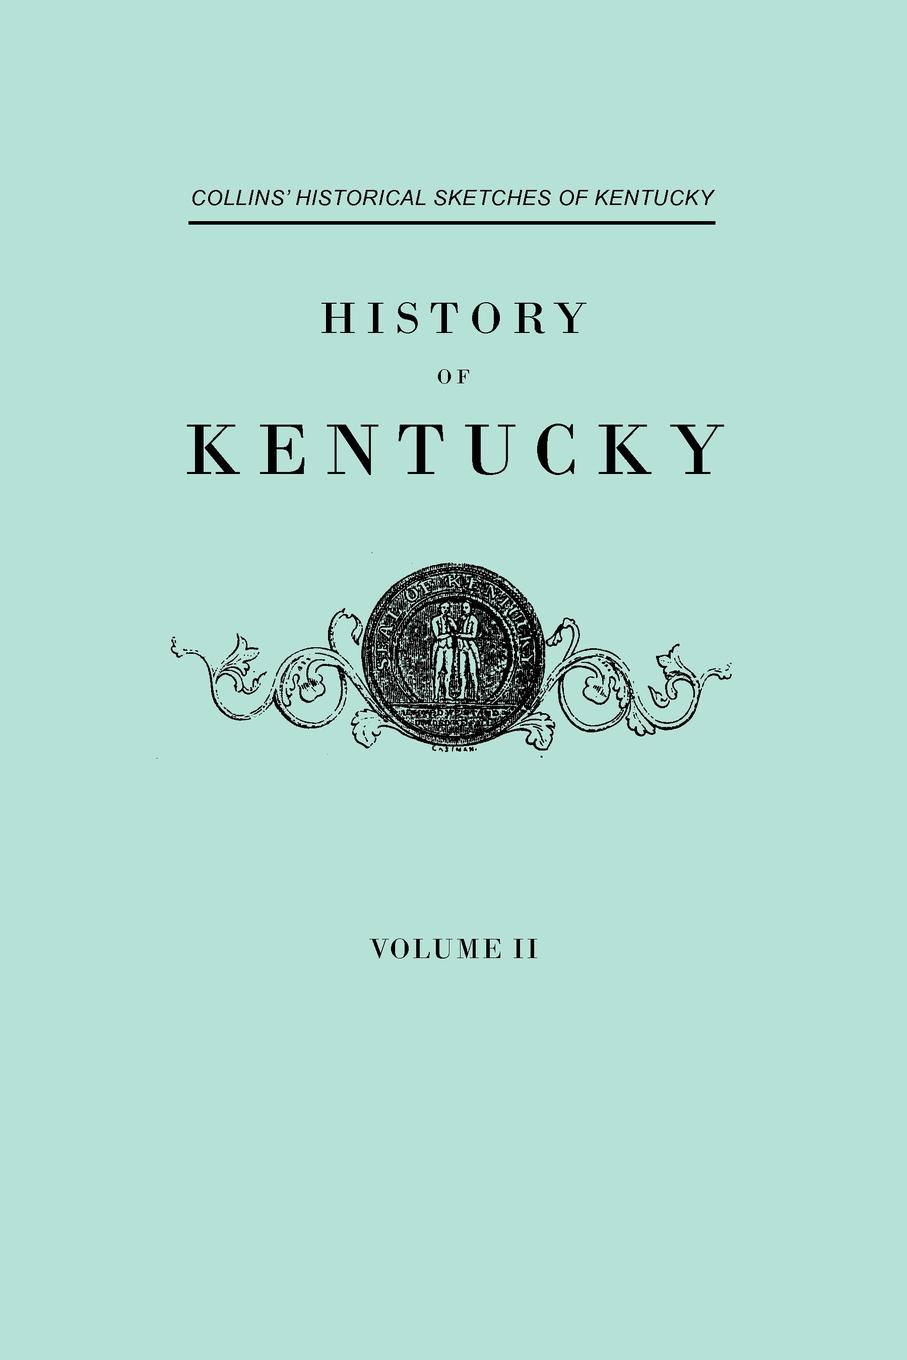 Lewis Collins, Richard H. Collins History f Kentucky. Collins' Historical Sketches of Kentucky. In Two Volumes. Volume II